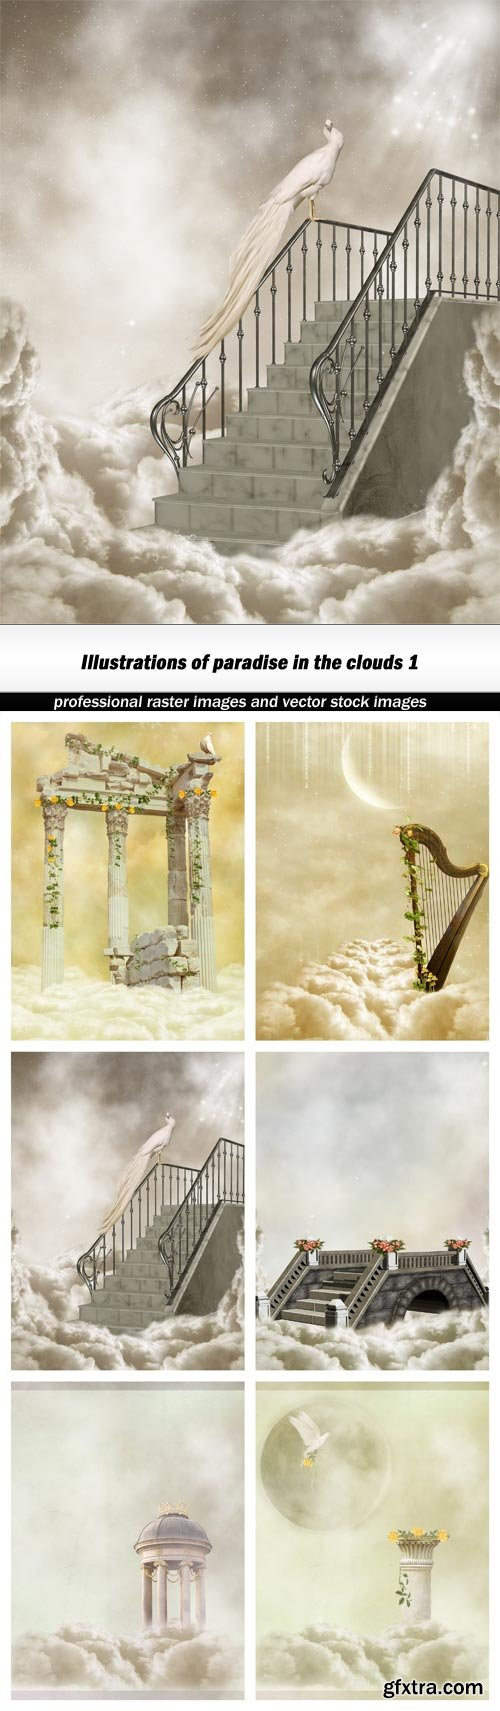 Illustrations of paradise in the clouds 1 - 6 UHQ JPEG